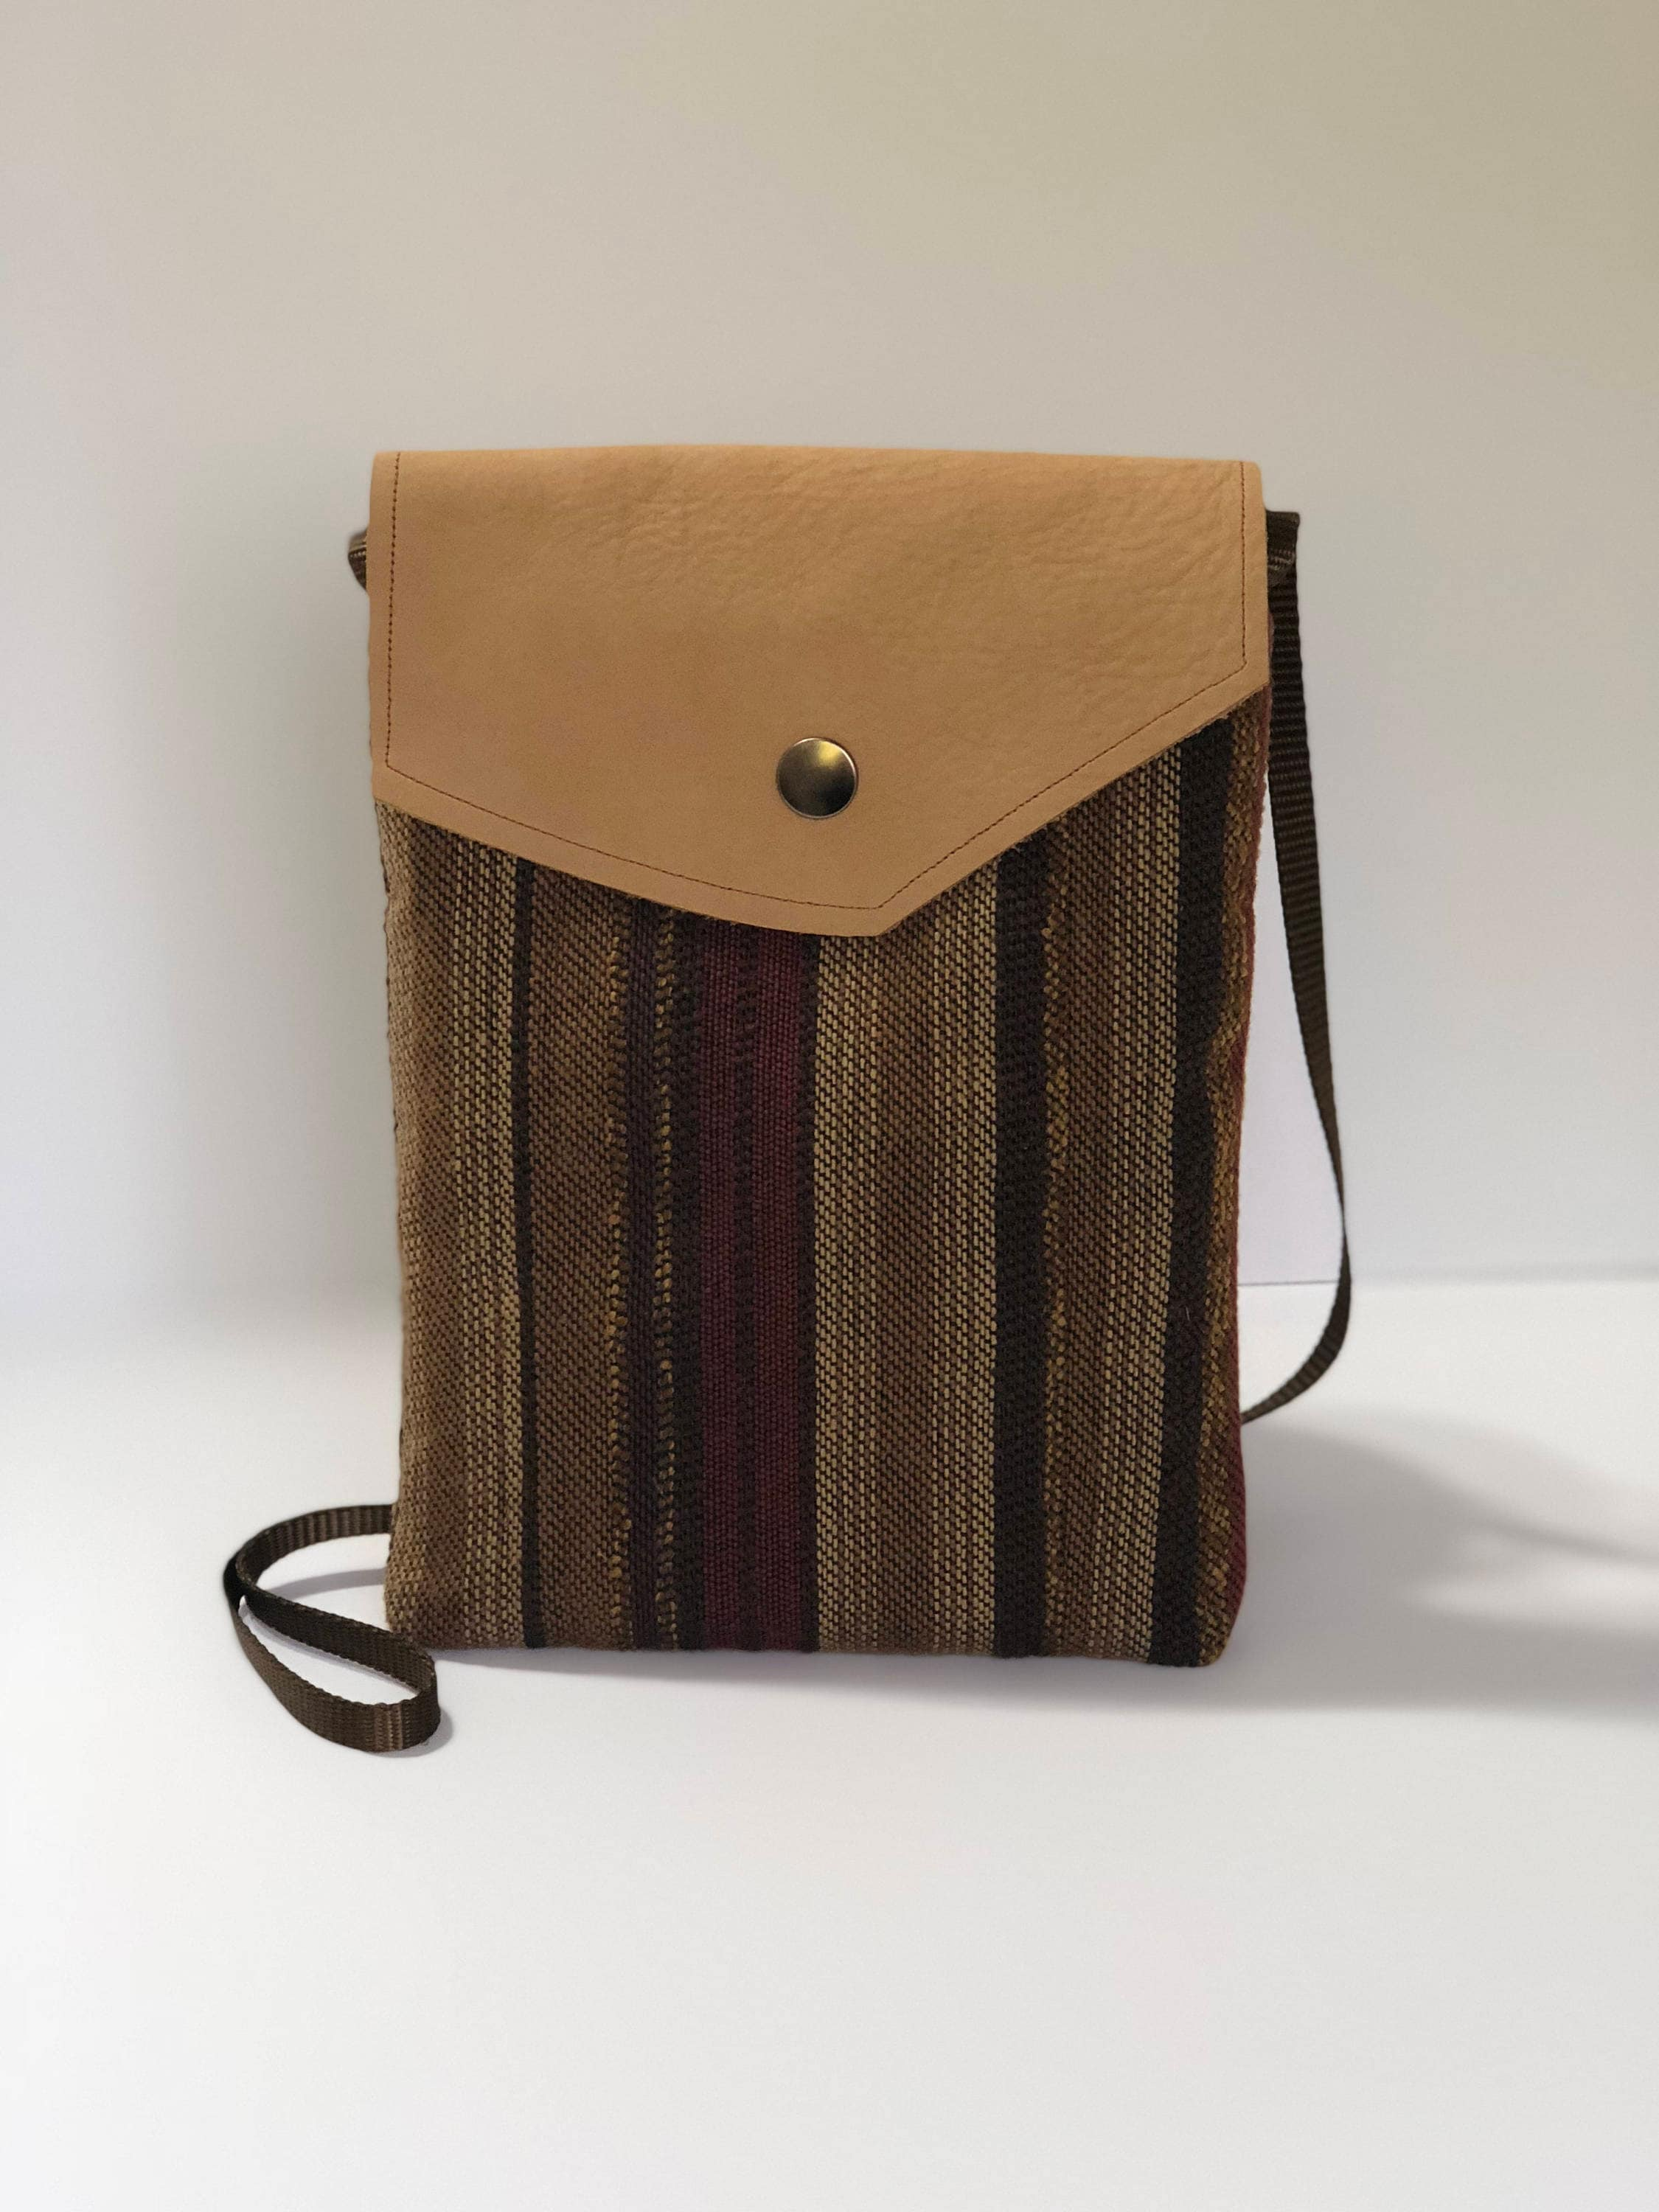 27098f3de1 Beige Brown Suede Crossbody Bag Small Leather Earth-tone